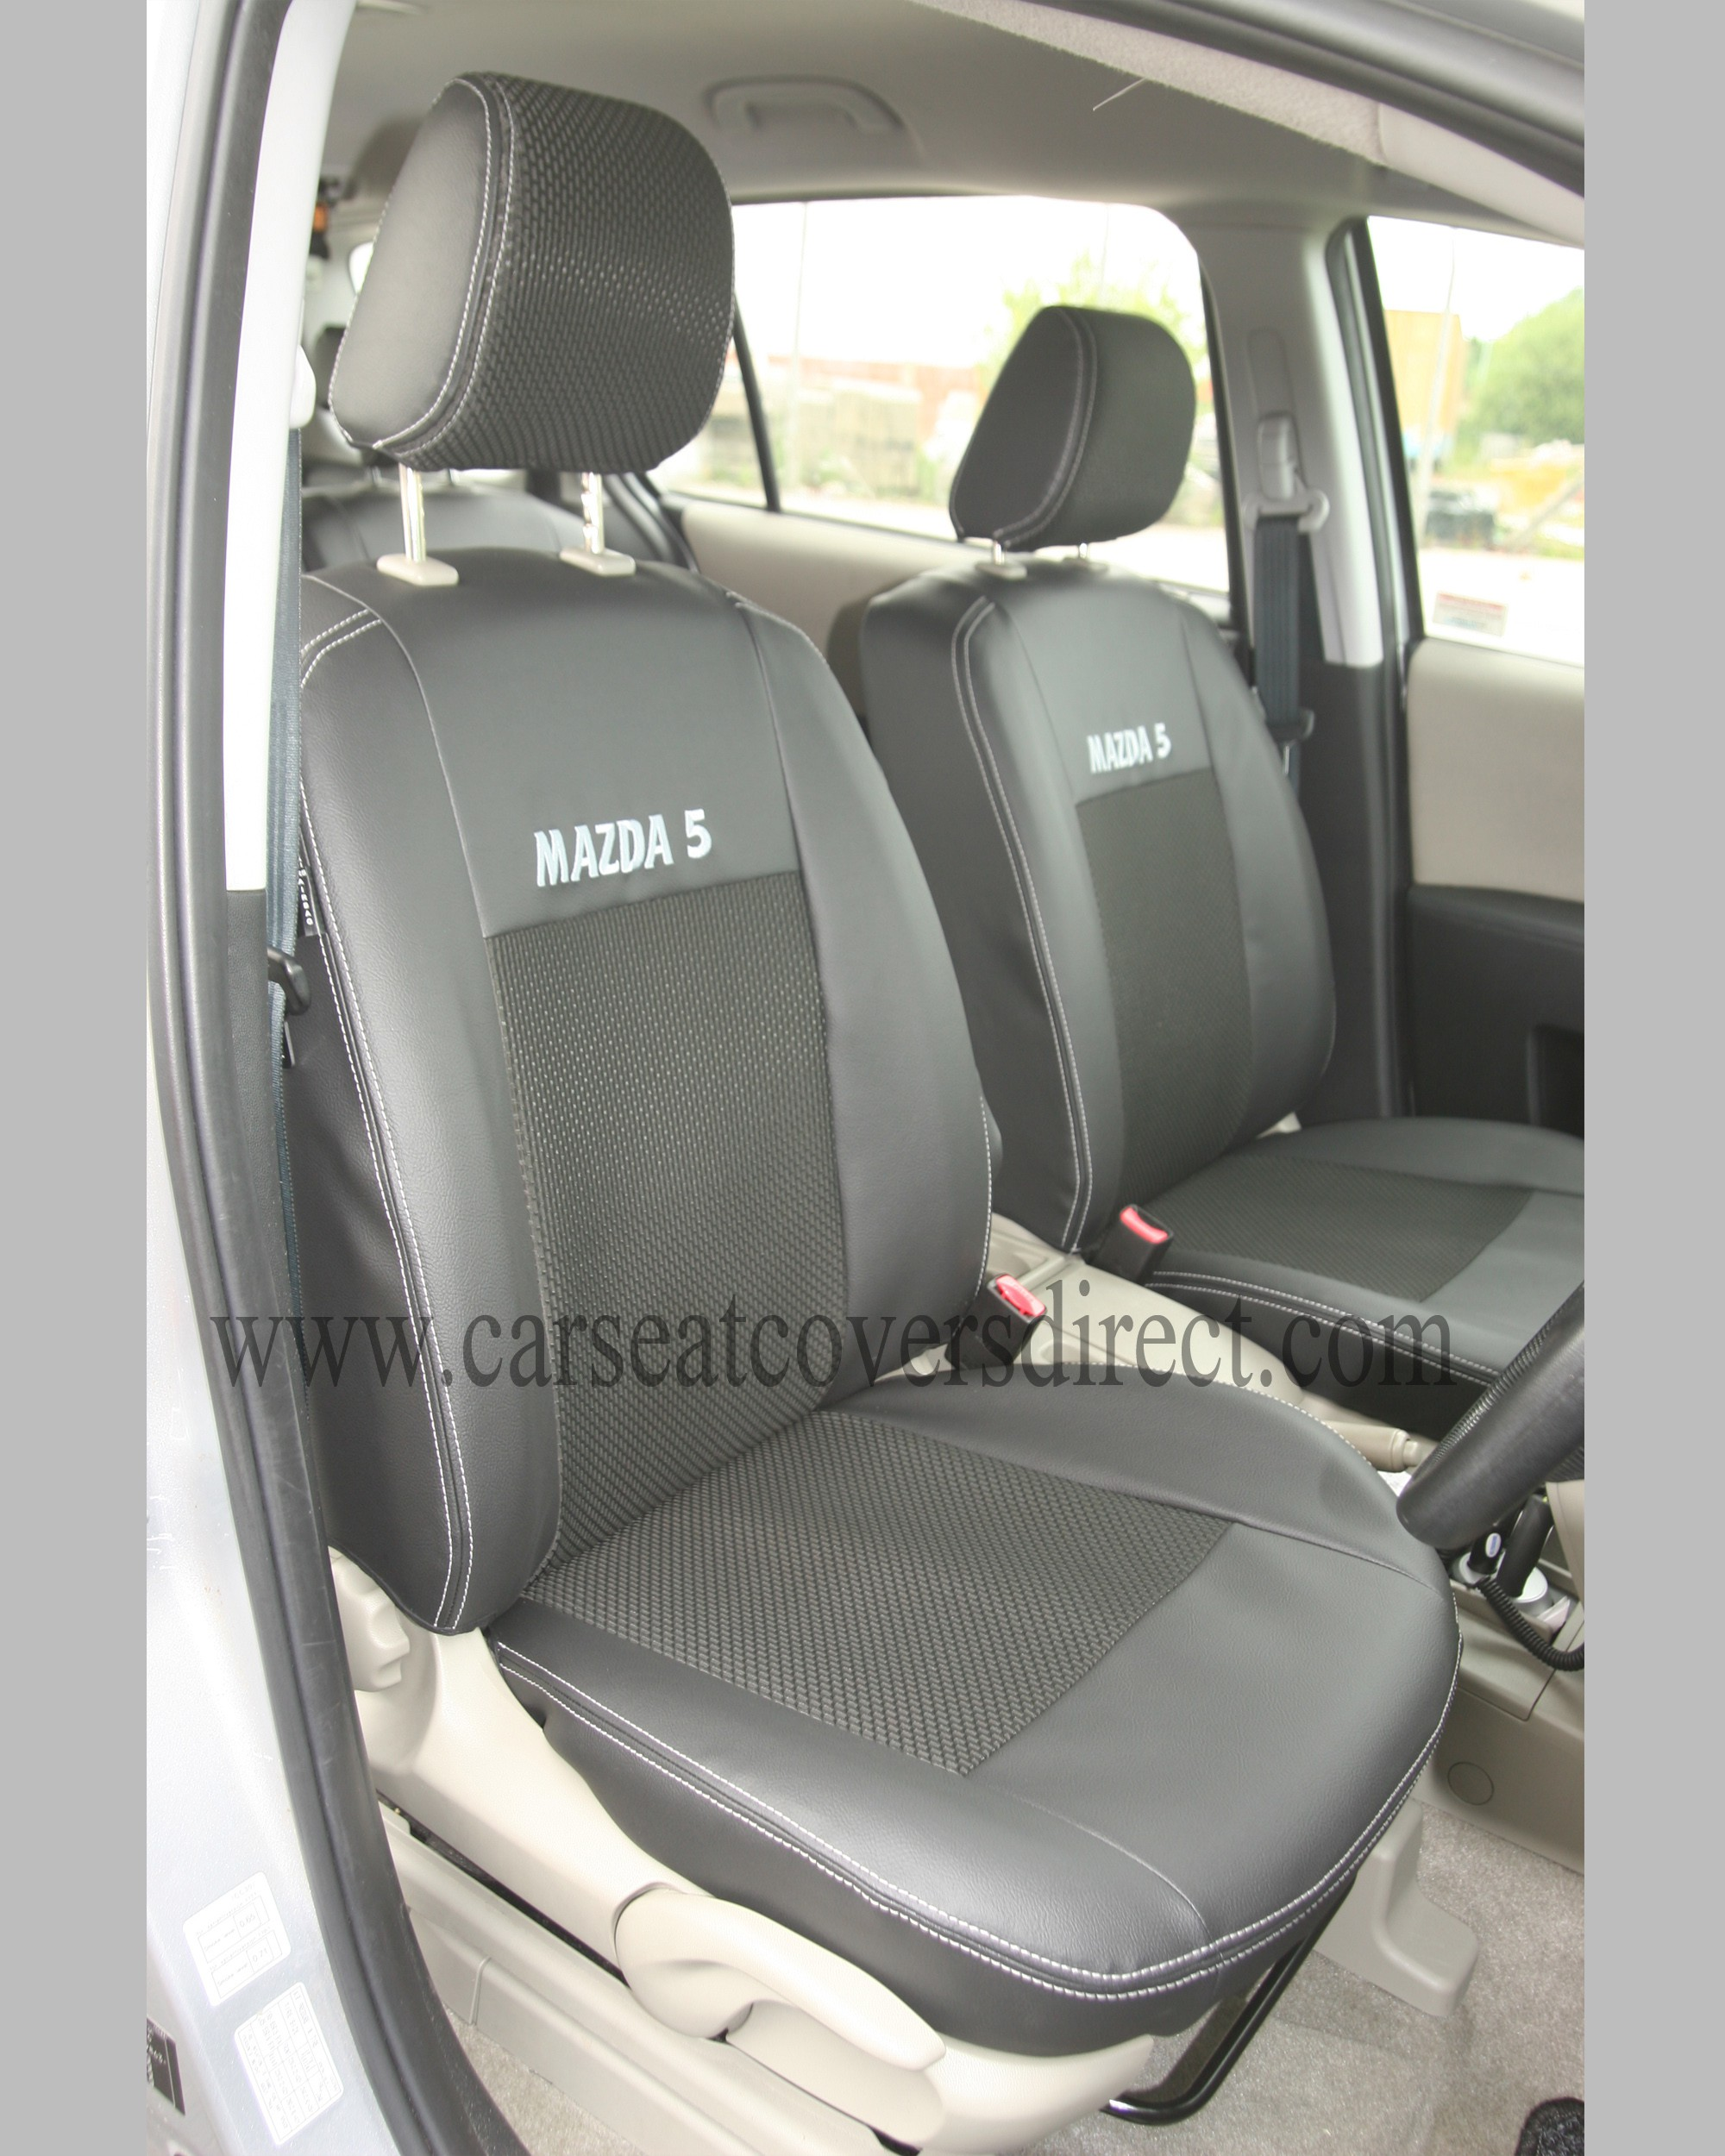 mazda 5 seat covers custom car seat covers custom tailored seat covers car seat covers. Black Bedroom Furniture Sets. Home Design Ideas